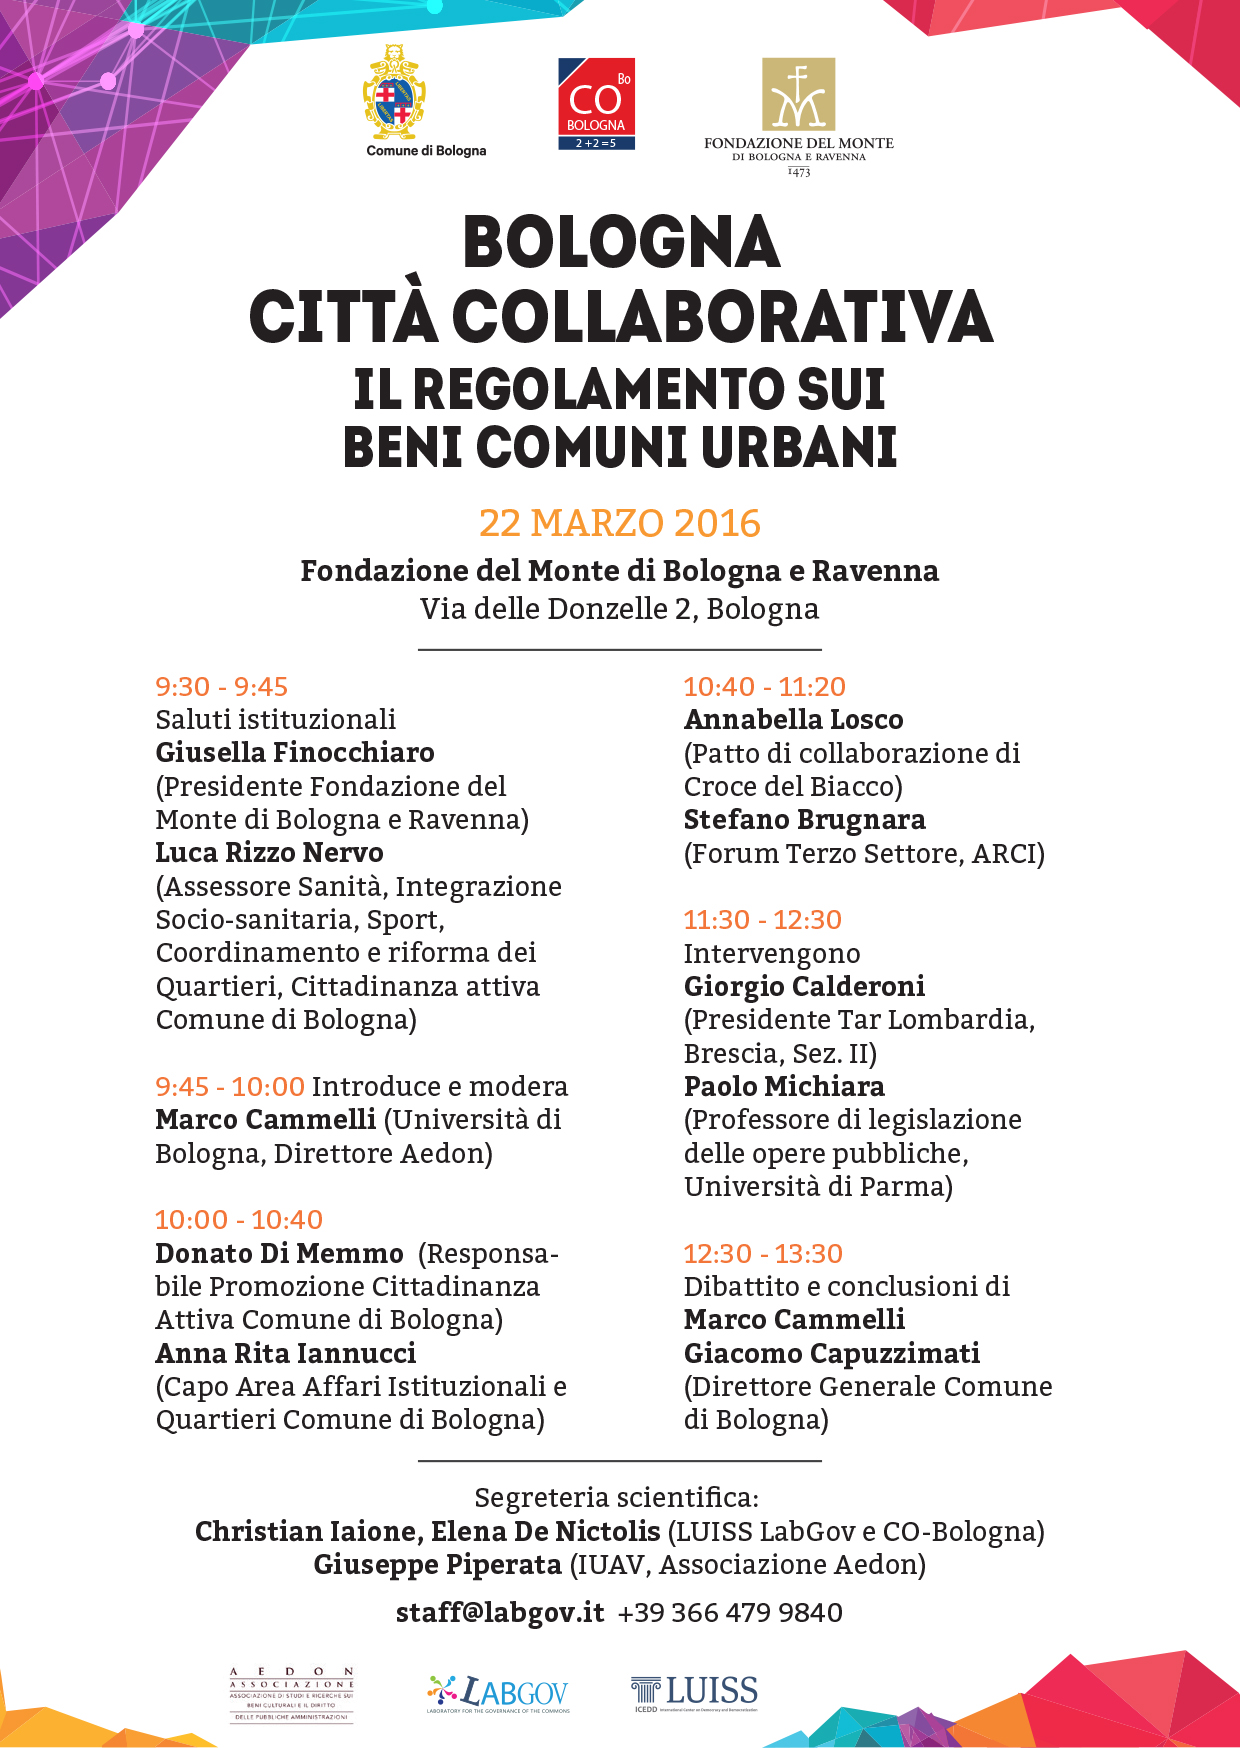 CO-Bologna restarts to build new forms of collaborative governance